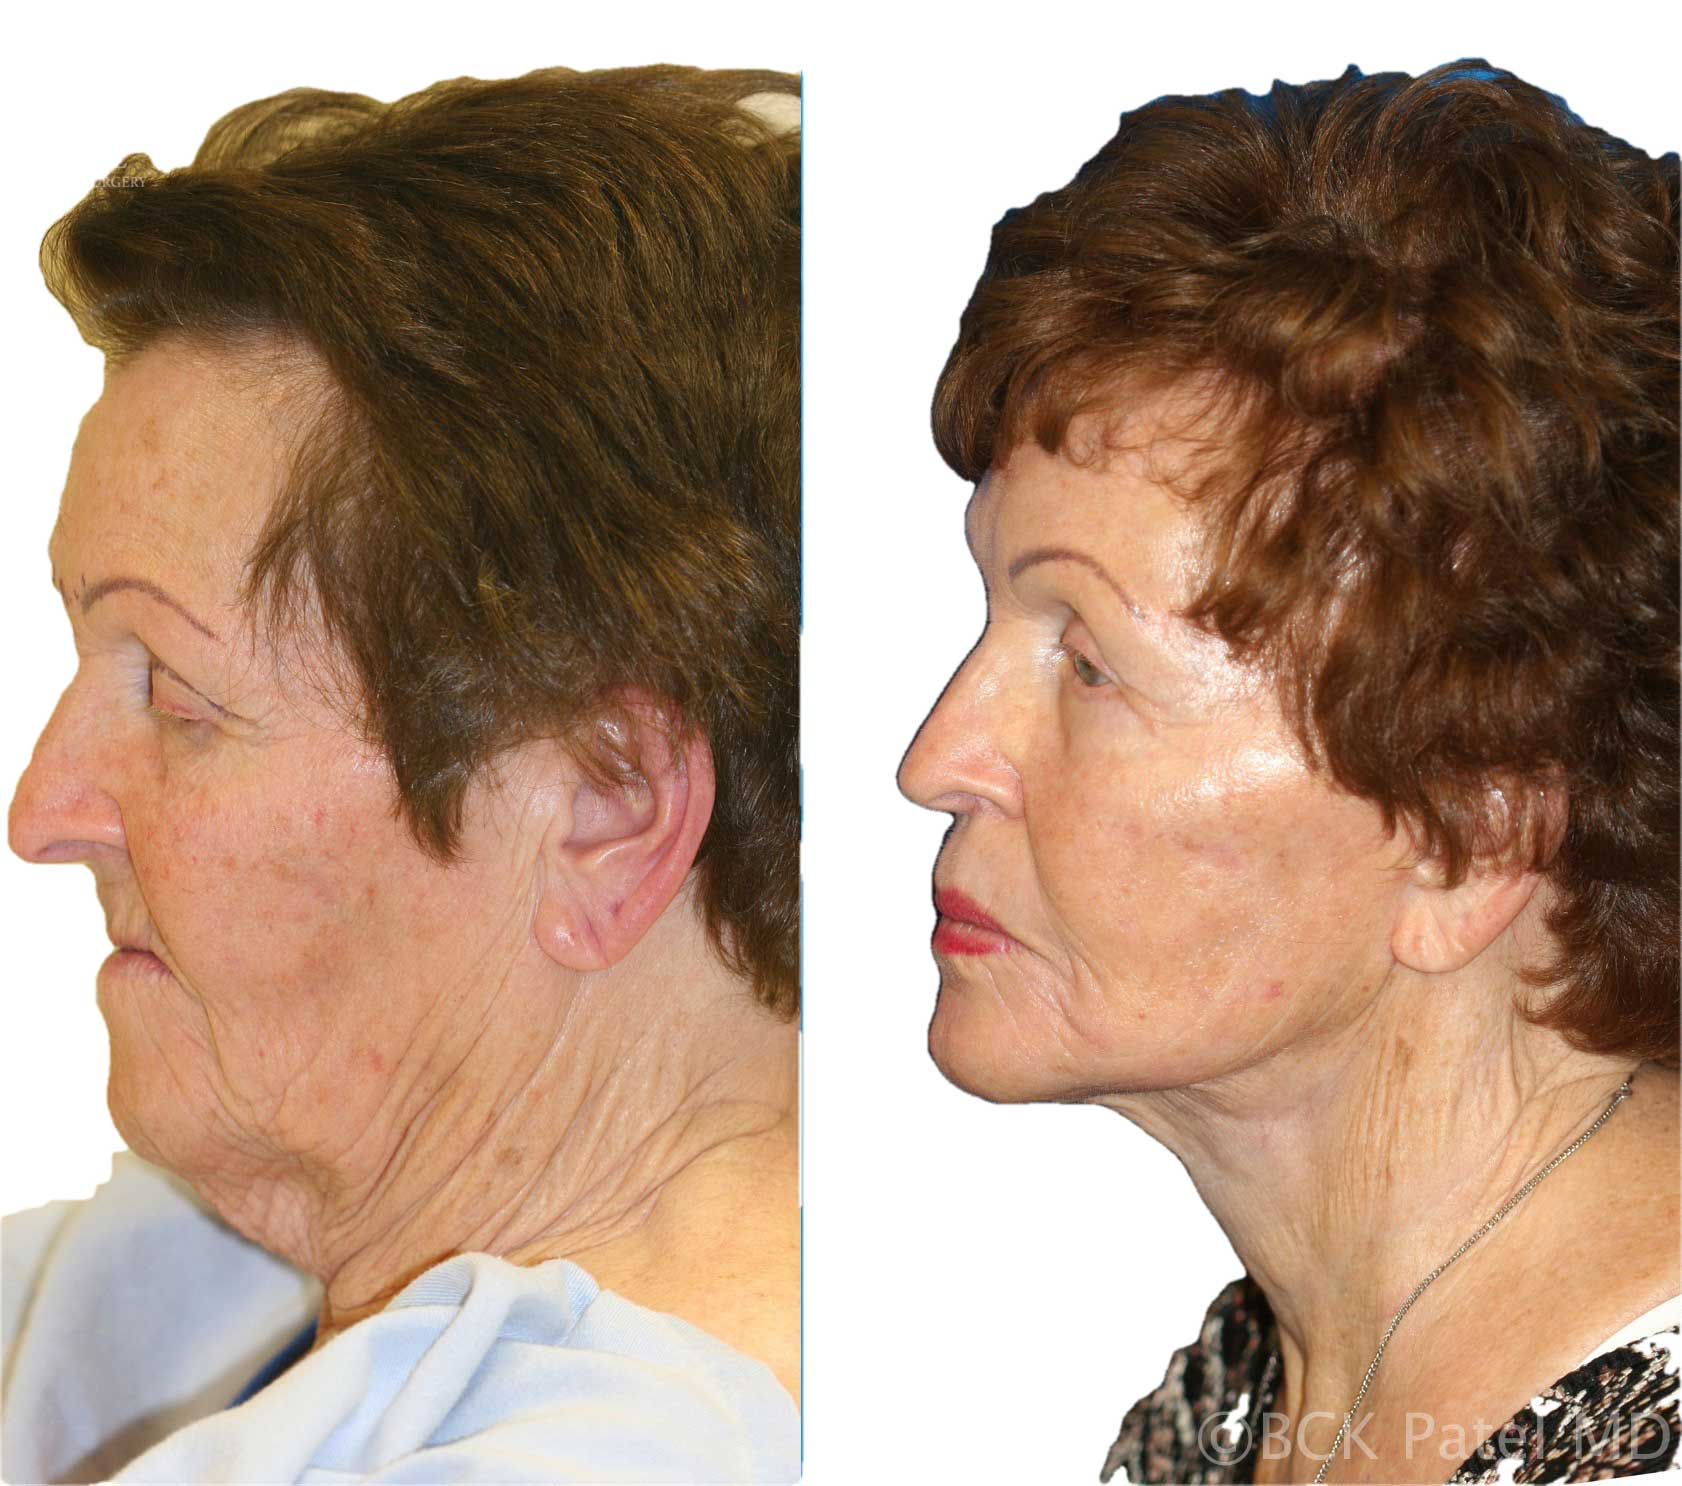 englishsurgeon.com is the home of the English Surgeon: Dr. BCK Patel performs a facelift and necklift in a female to show beautiful facelift results